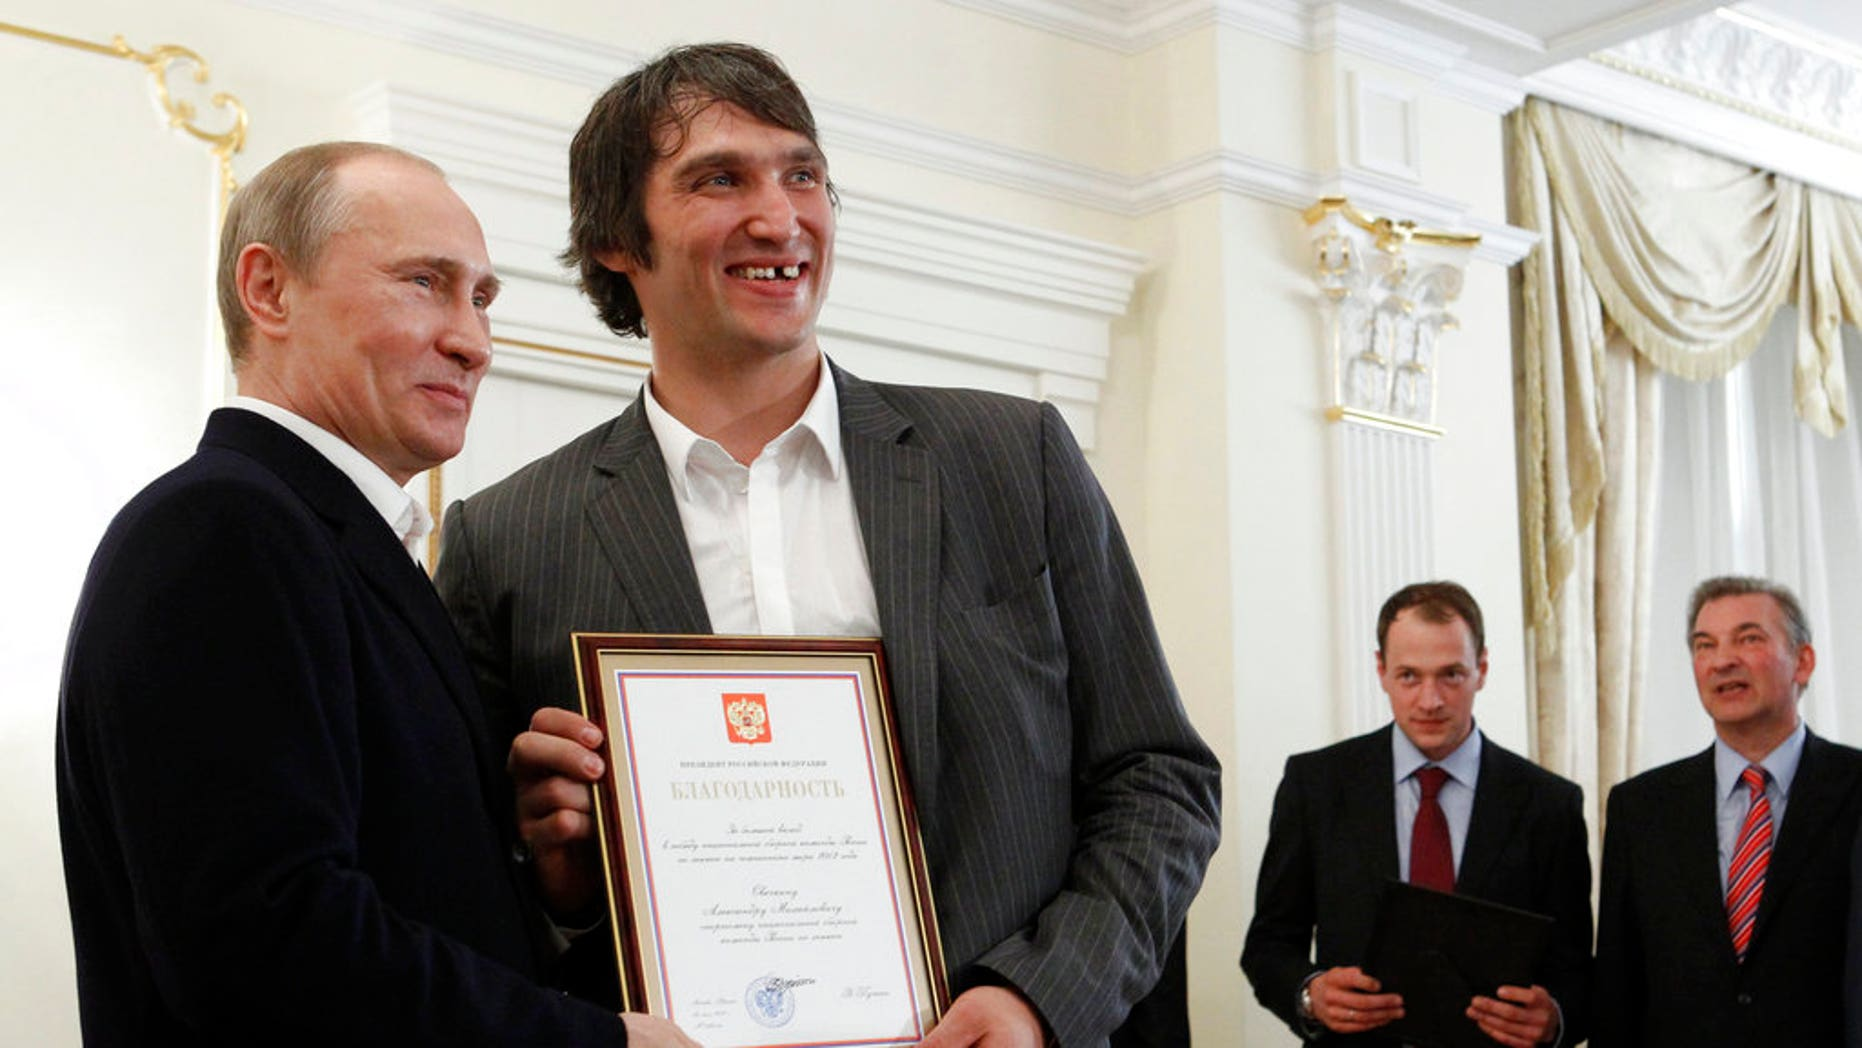 Nhl Star Alex Ovechkin Announces Social Movement In Support Of Vladimir Putin Fox News